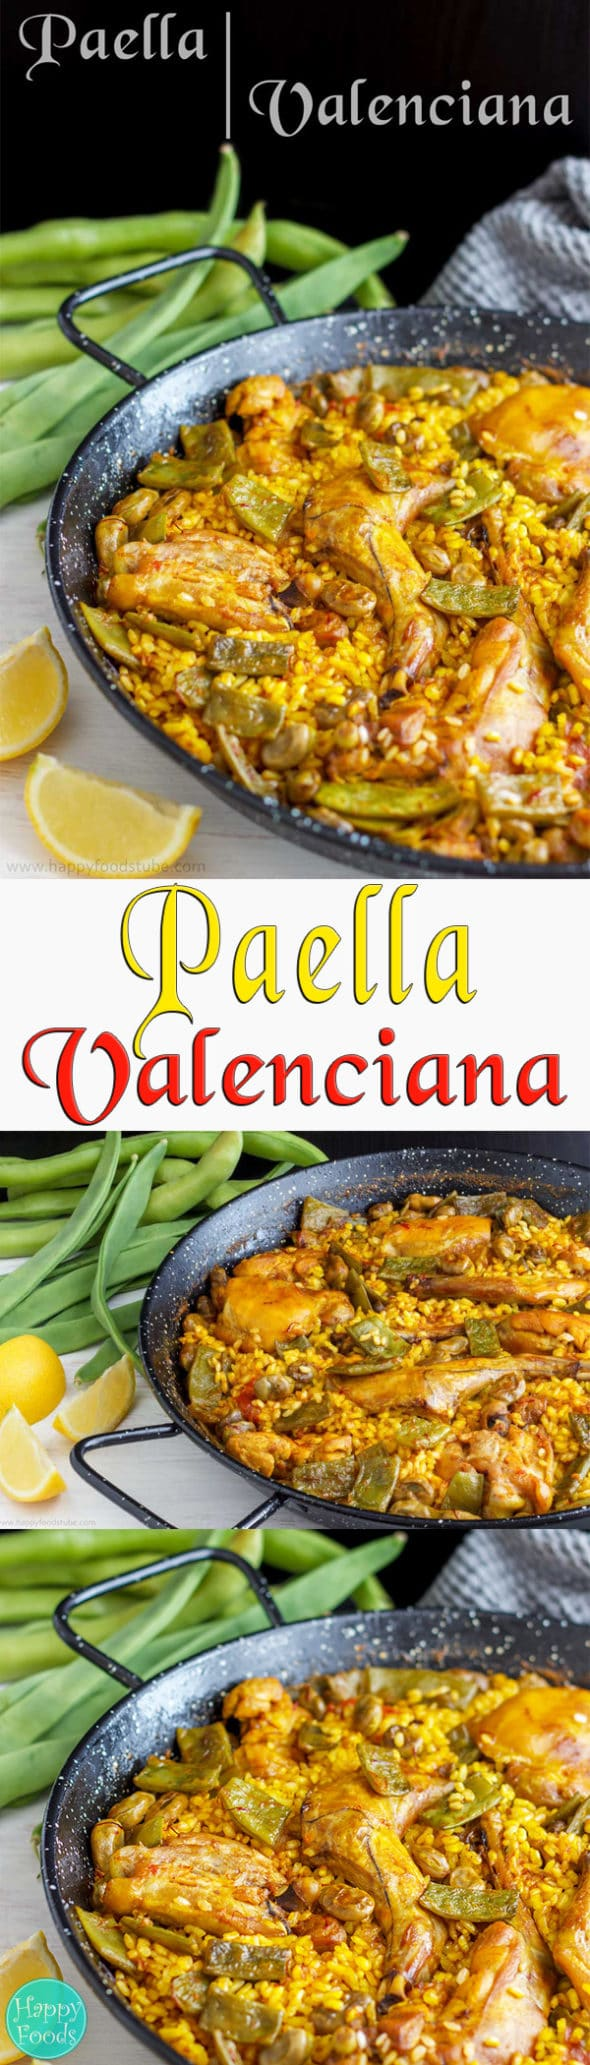 Homemade paella valenciana recipe video happy foods tube traditional paella valenciana recipe paella is a great spanish rice dish to share with family forumfinder Image collections